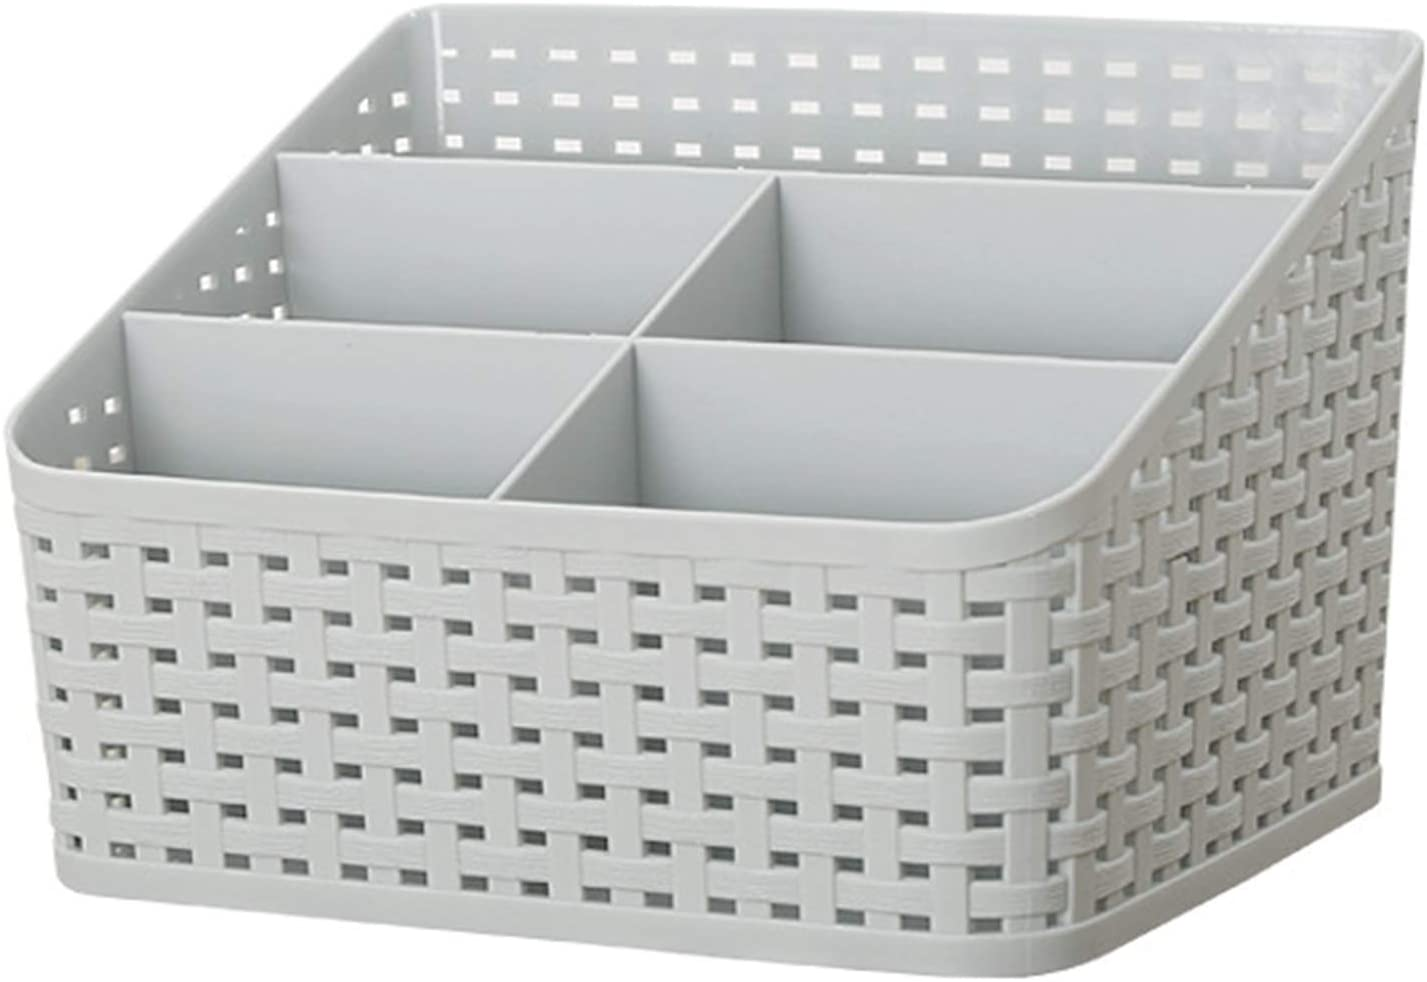 WOFUYOU Premium Multi-Purpose 5 Compartments Rattan Storage Plastic Basket with Mesh Hollow Design for Makeup Room Office Desk Shower Kitchen (Grey)